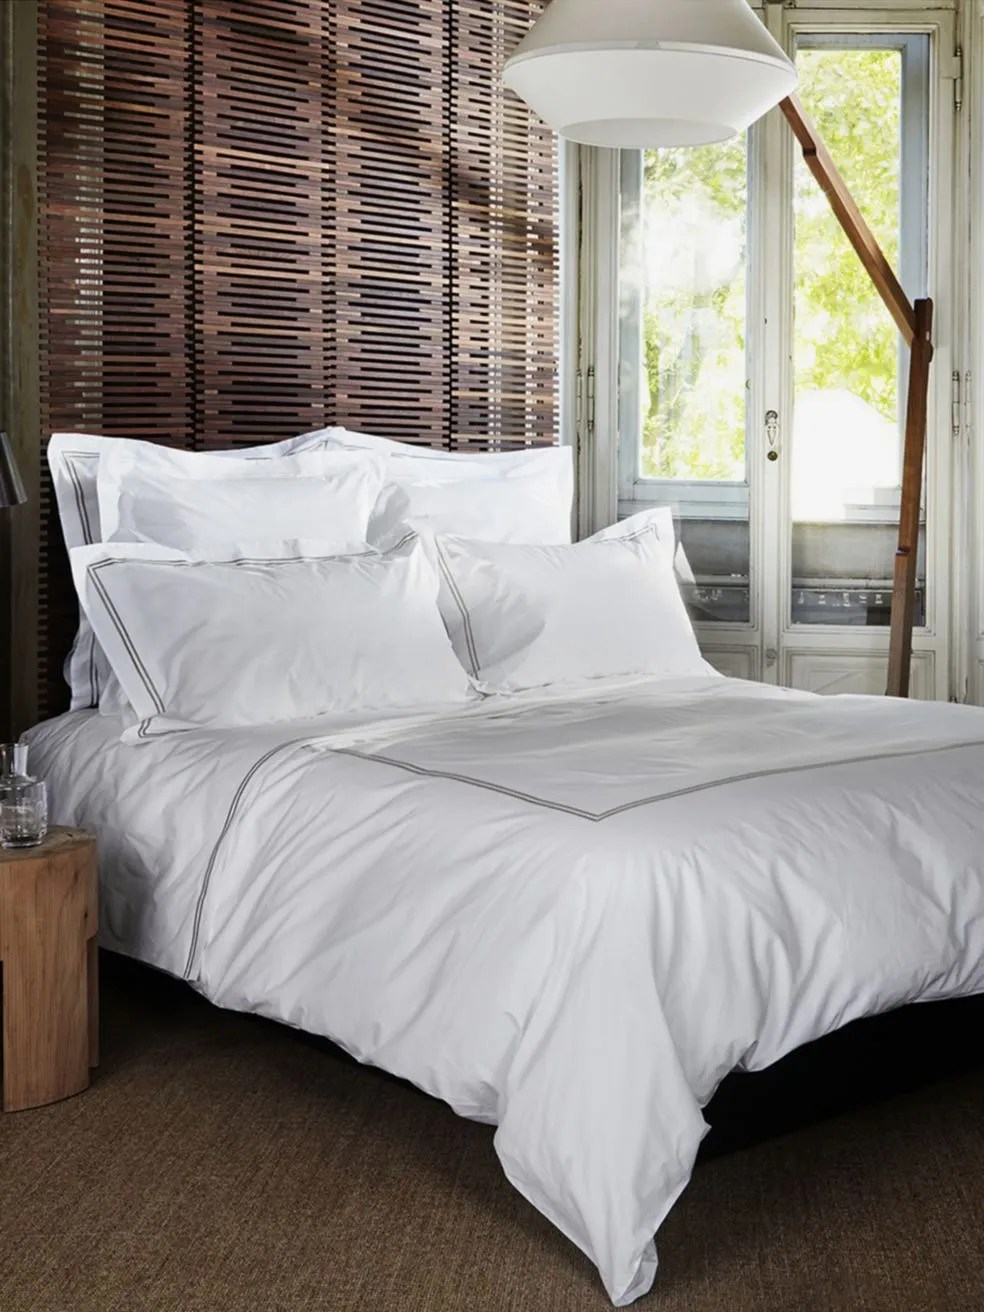 White Duvet Cover Queen 35 Of The Best Duvet Covers According To Interior Designers